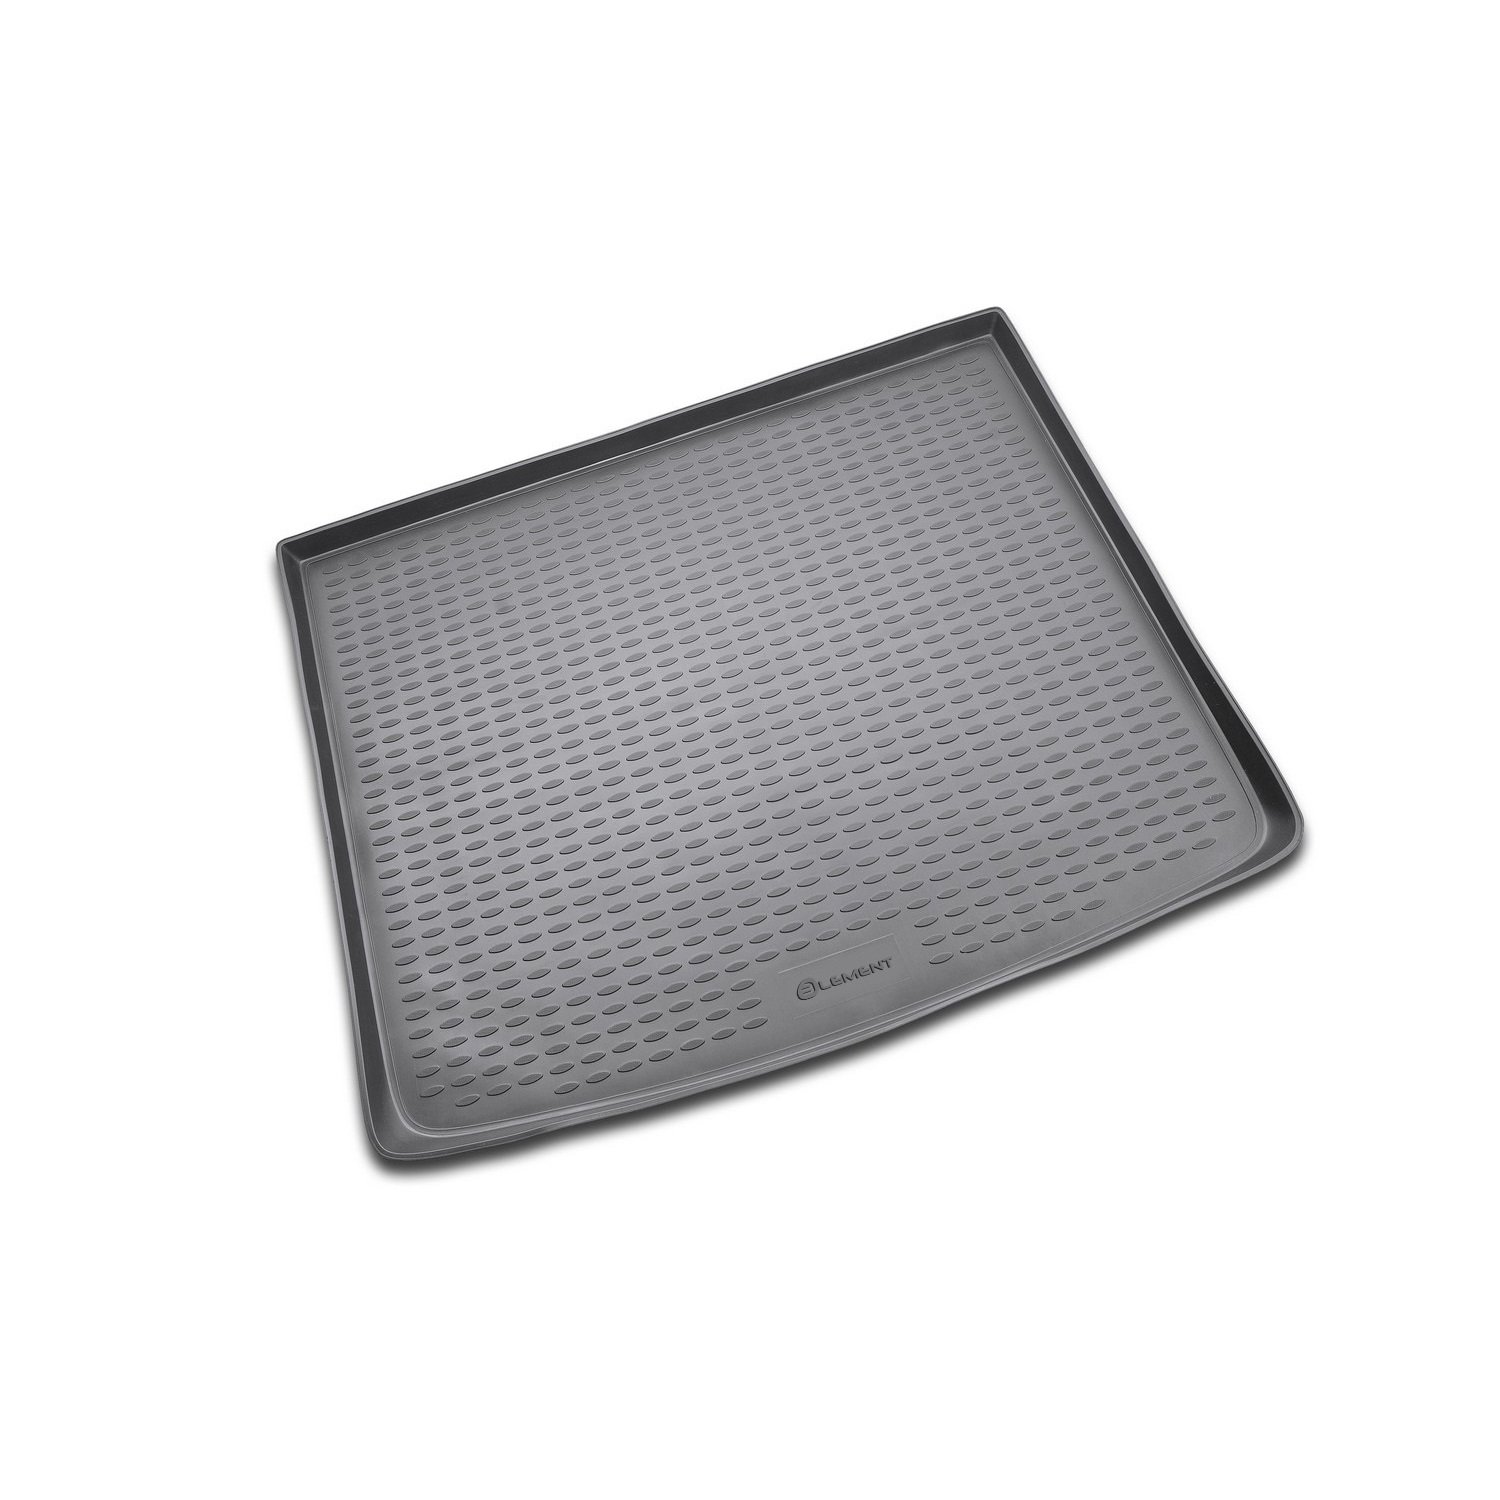 Trunk Mat For VW Touareg I 2003-2010 Cross. NLC.51.01.B13